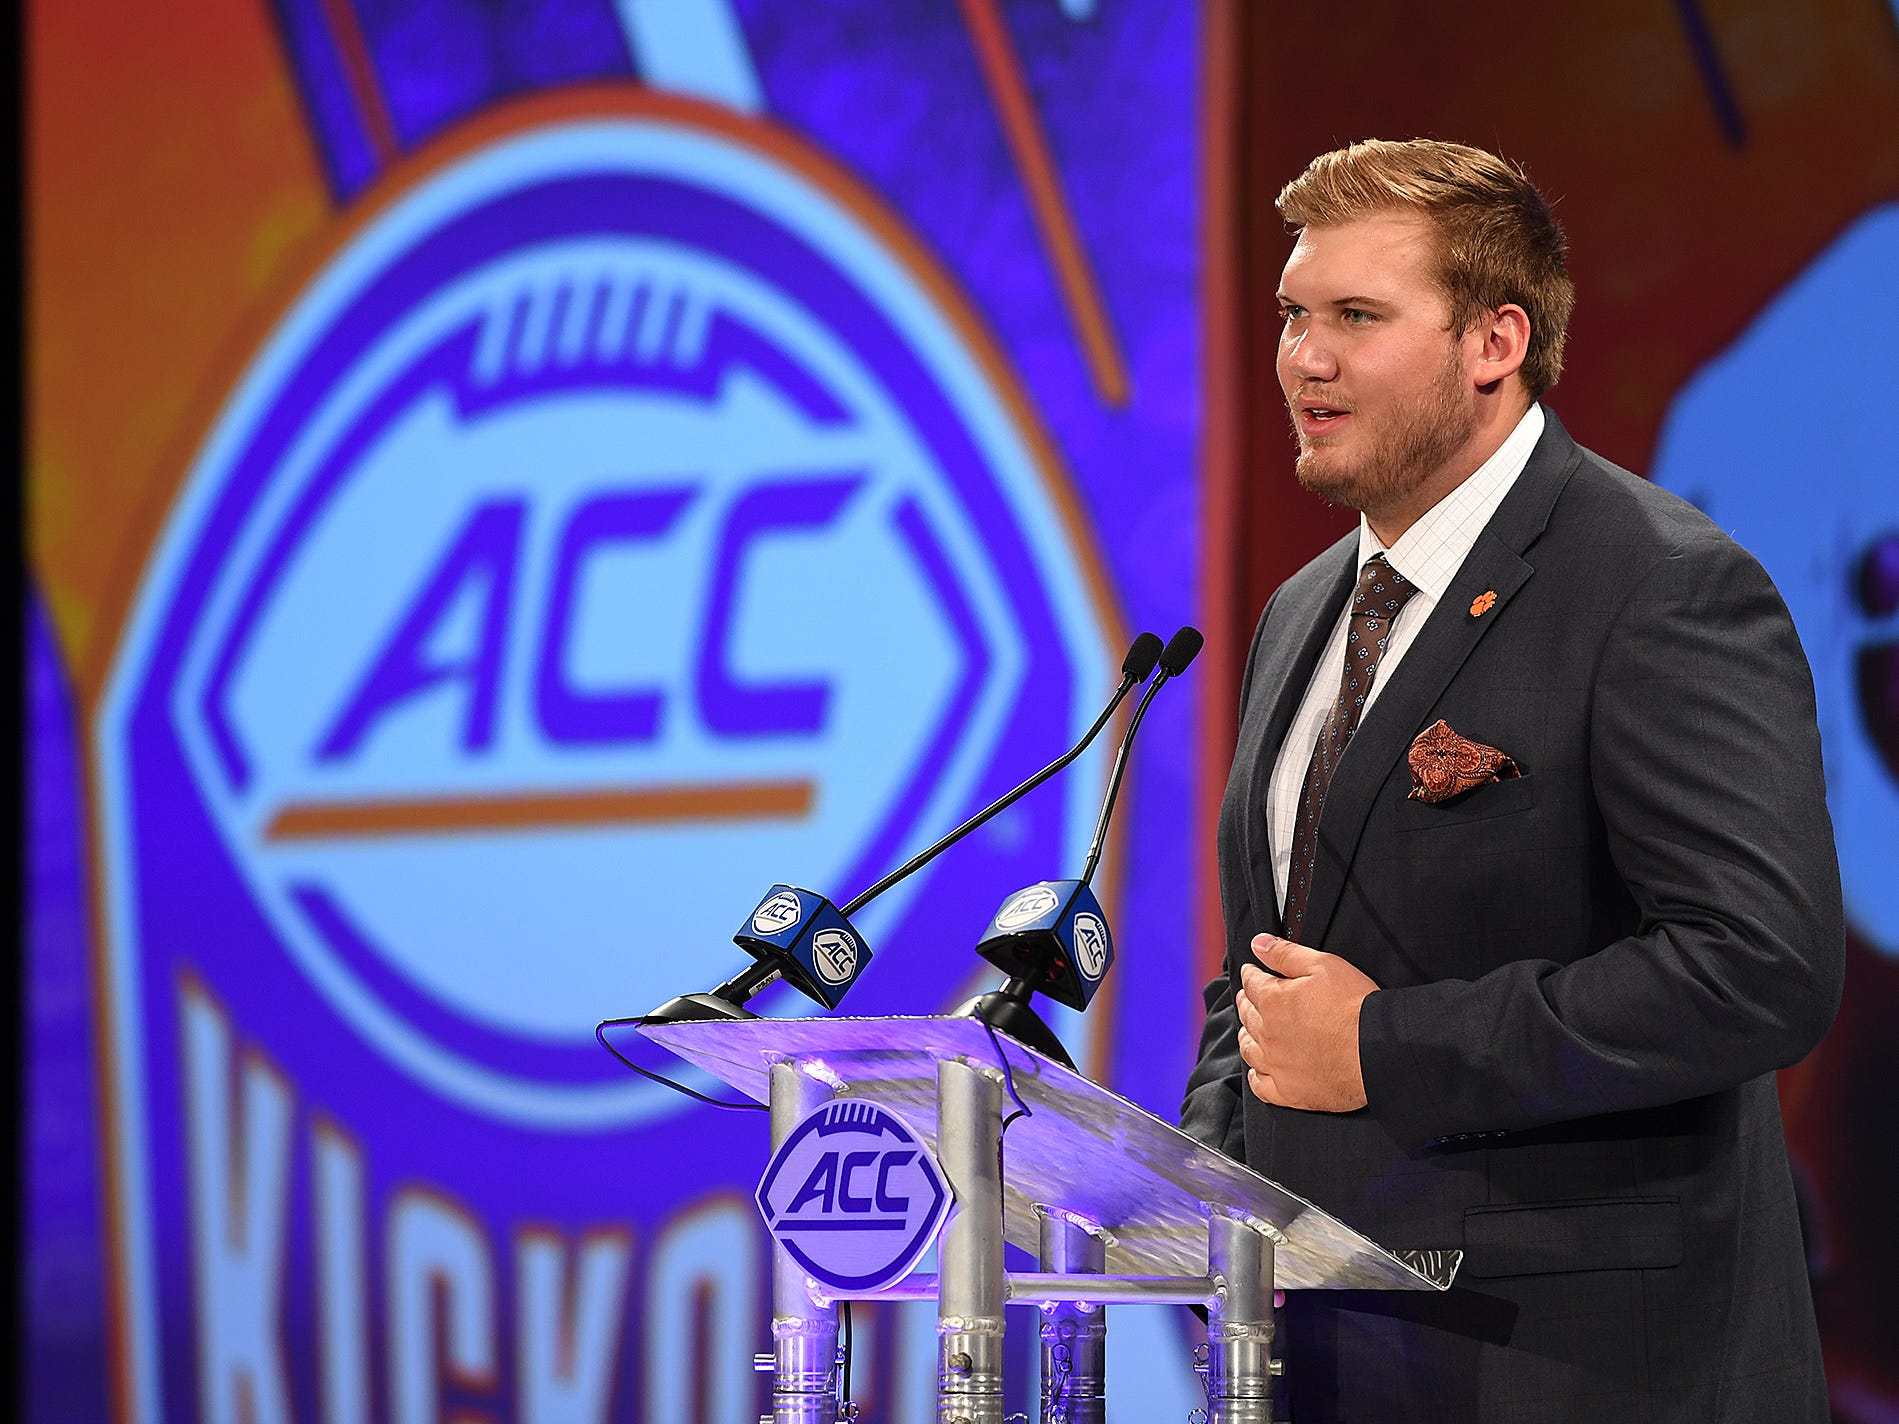 Clemson offensive lineman Mitch Hyatt answers questions at the ACC Football Kickoff in Charlotte, N.C., Thursday, July 19, 2018.